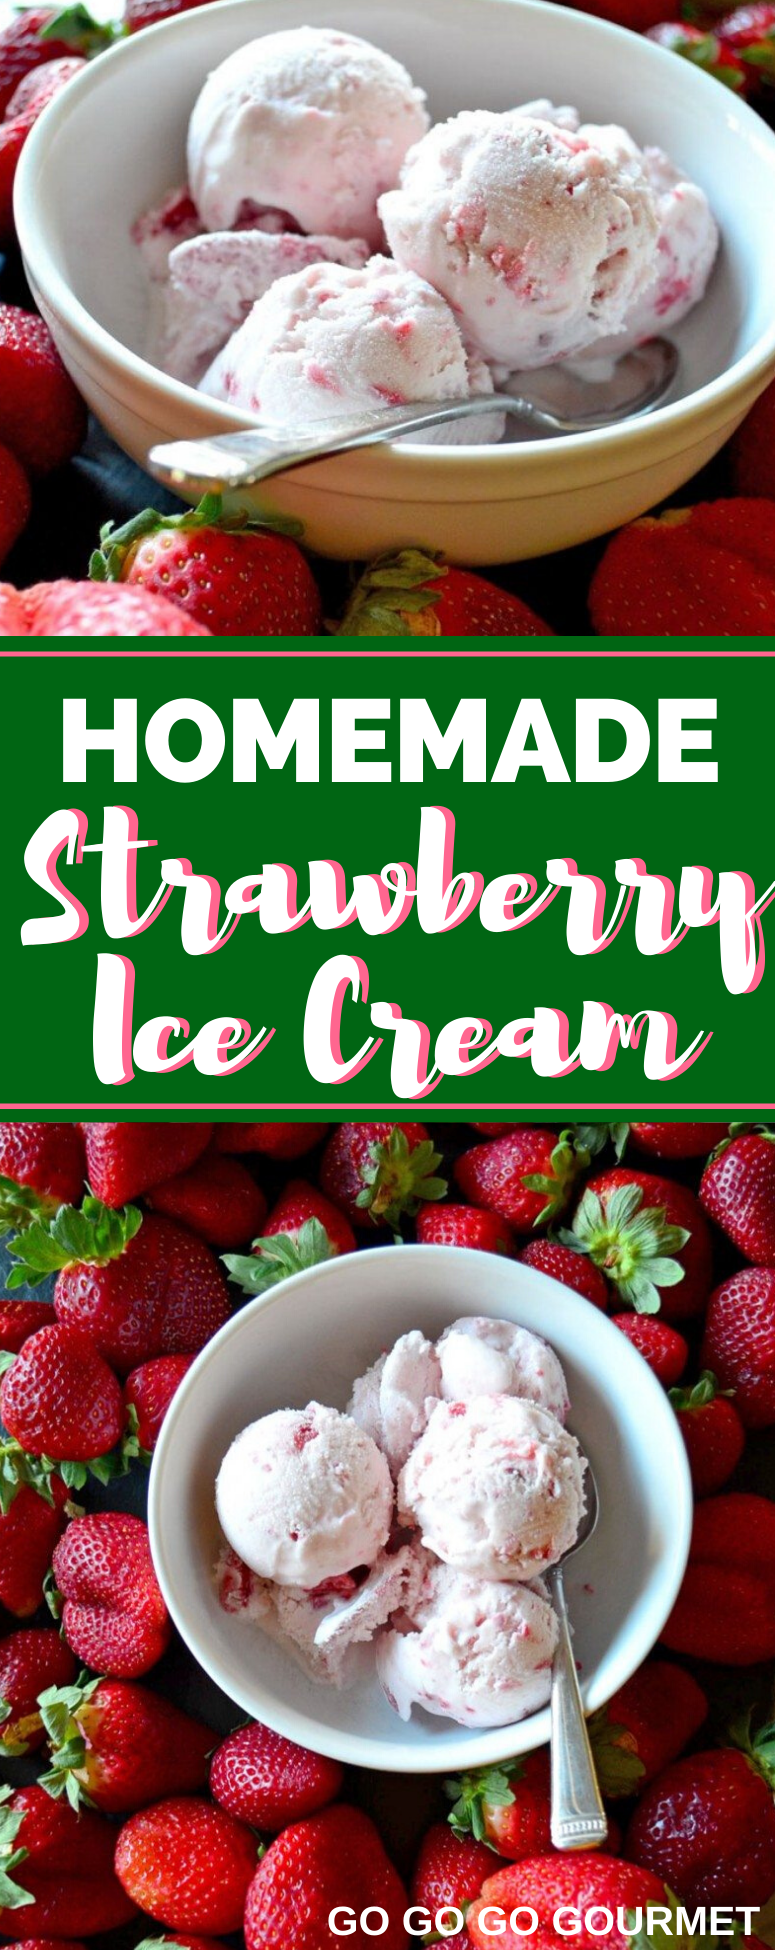 This easy homemade Strawberry Ice Cream recipe is the best! With an ice cream maker and a few ingredients, you are on your way to making the best ice cream ever! Perfect for putting in a bowl or a cone. #gogogogourmet #strawberryicecream #homemadeicecream #homemadestrawberryicecream via @gogogogourmet